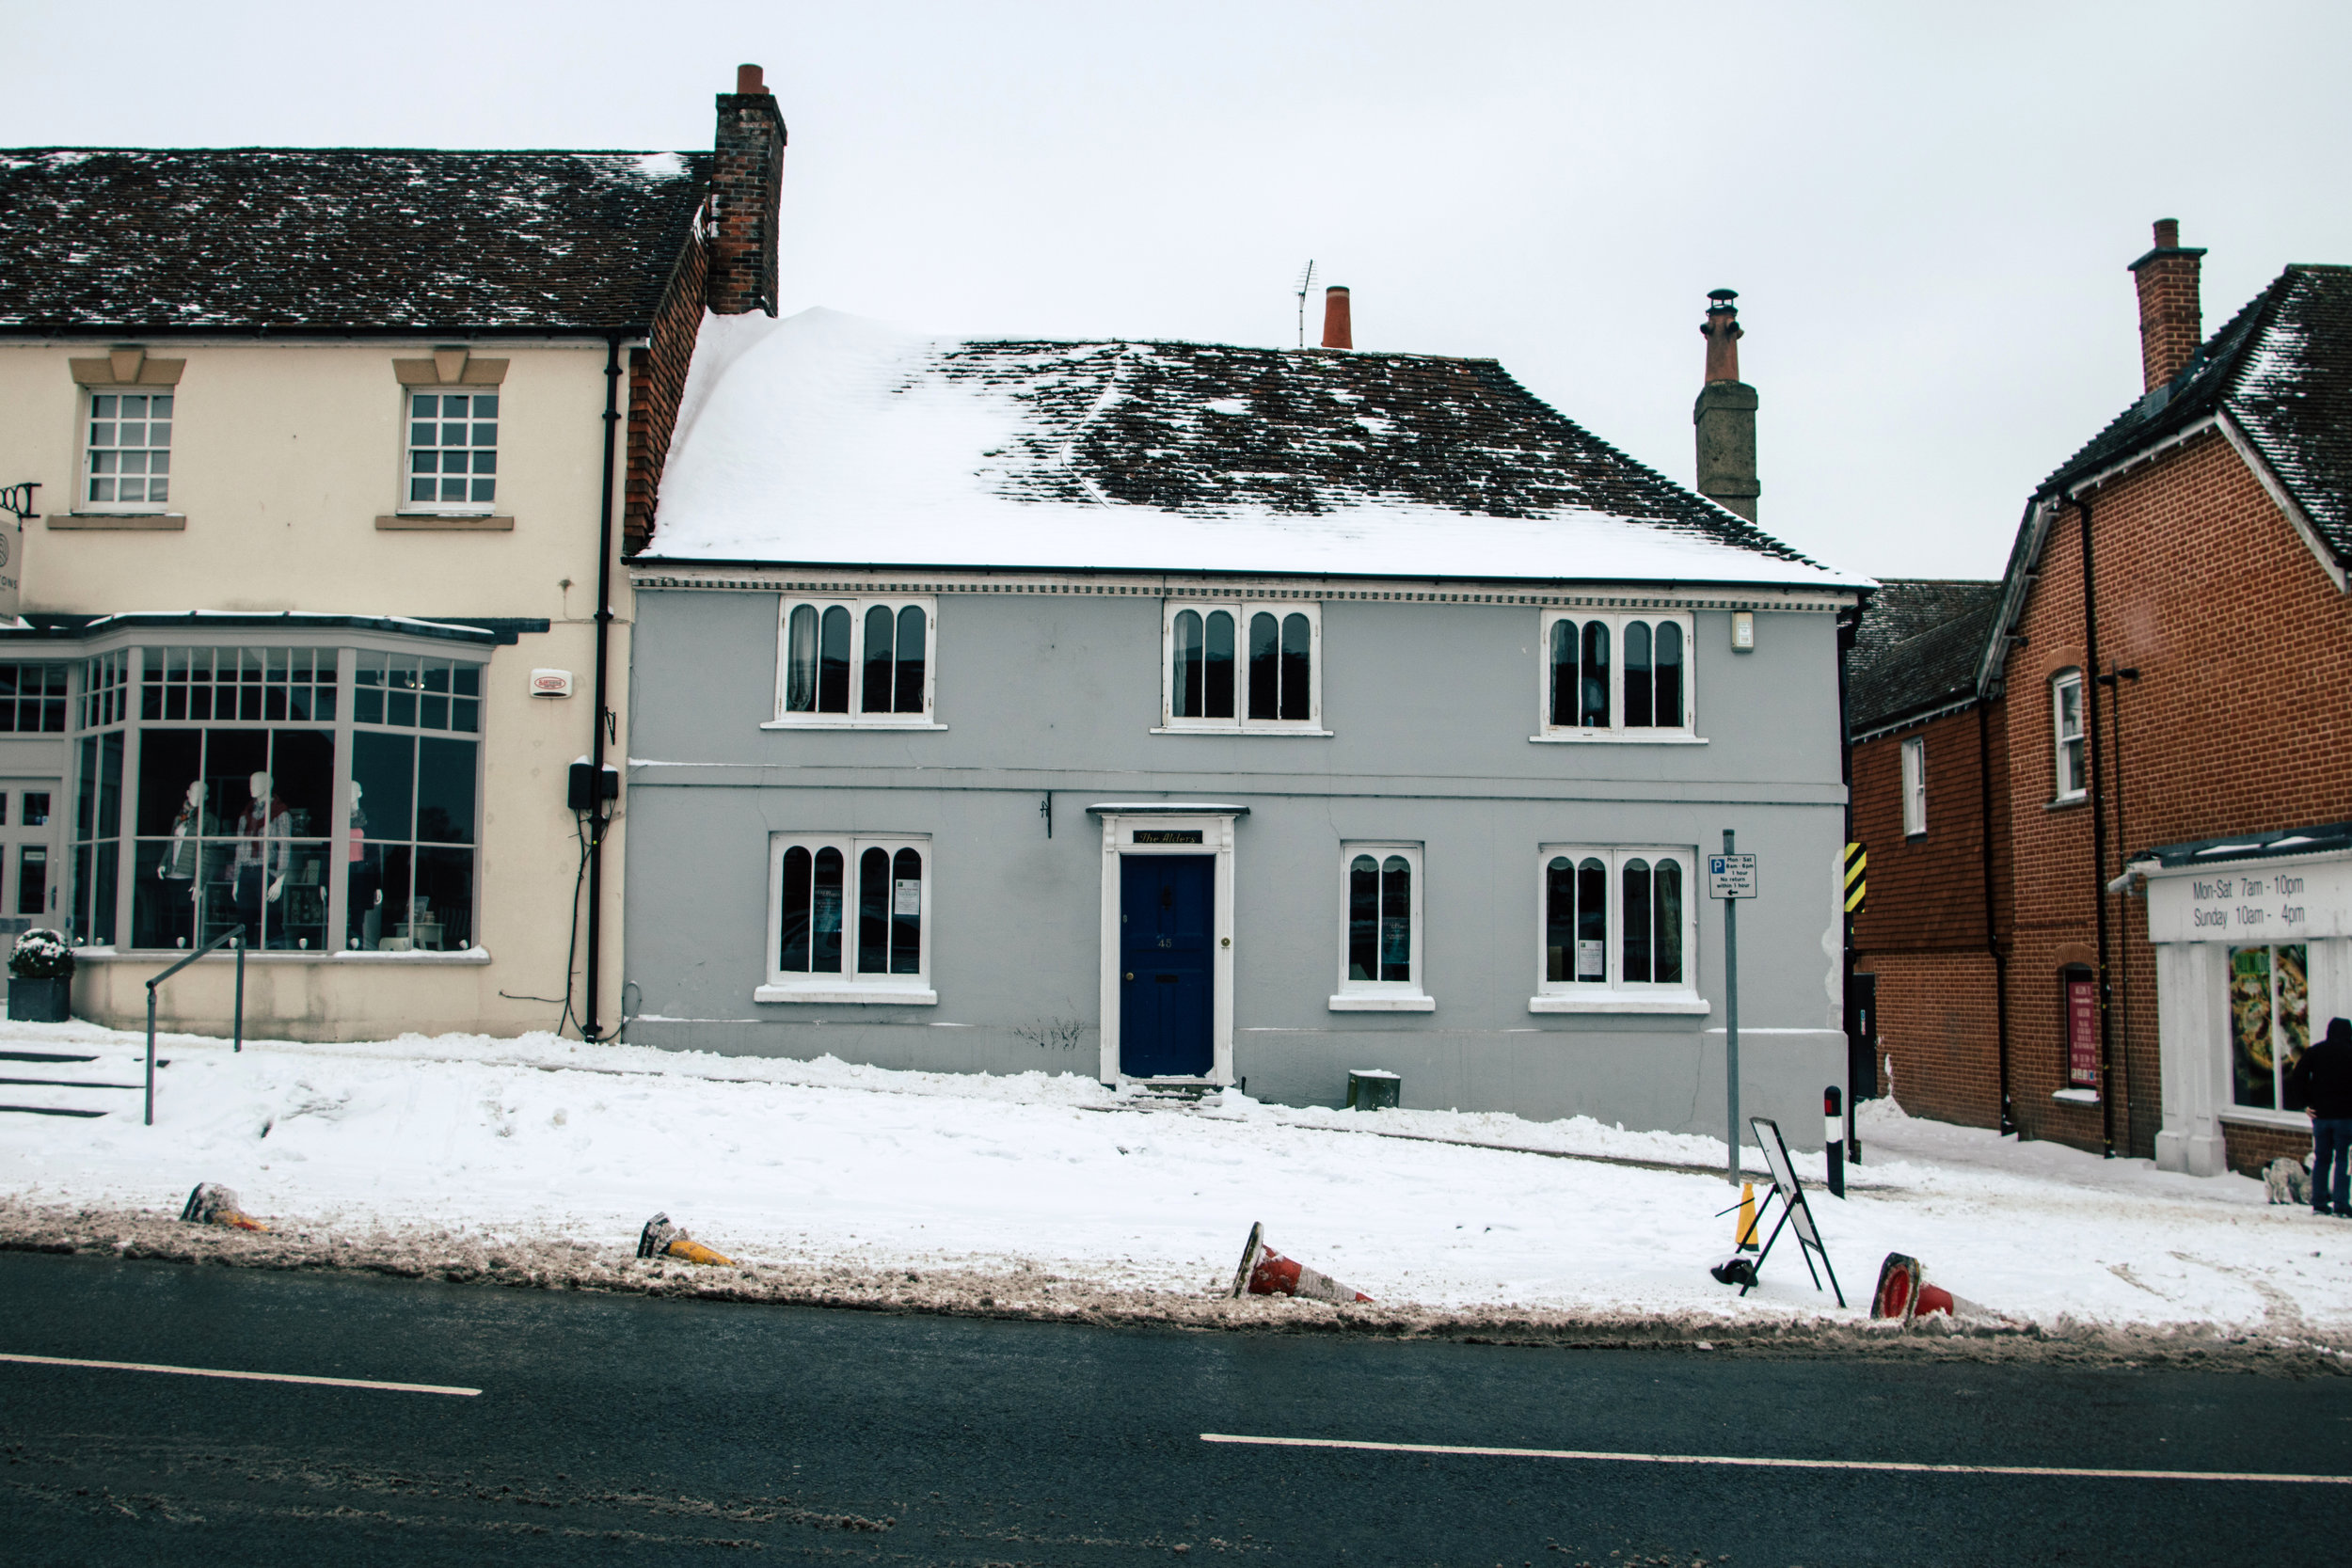 alresford snow (13 of 13).jpg